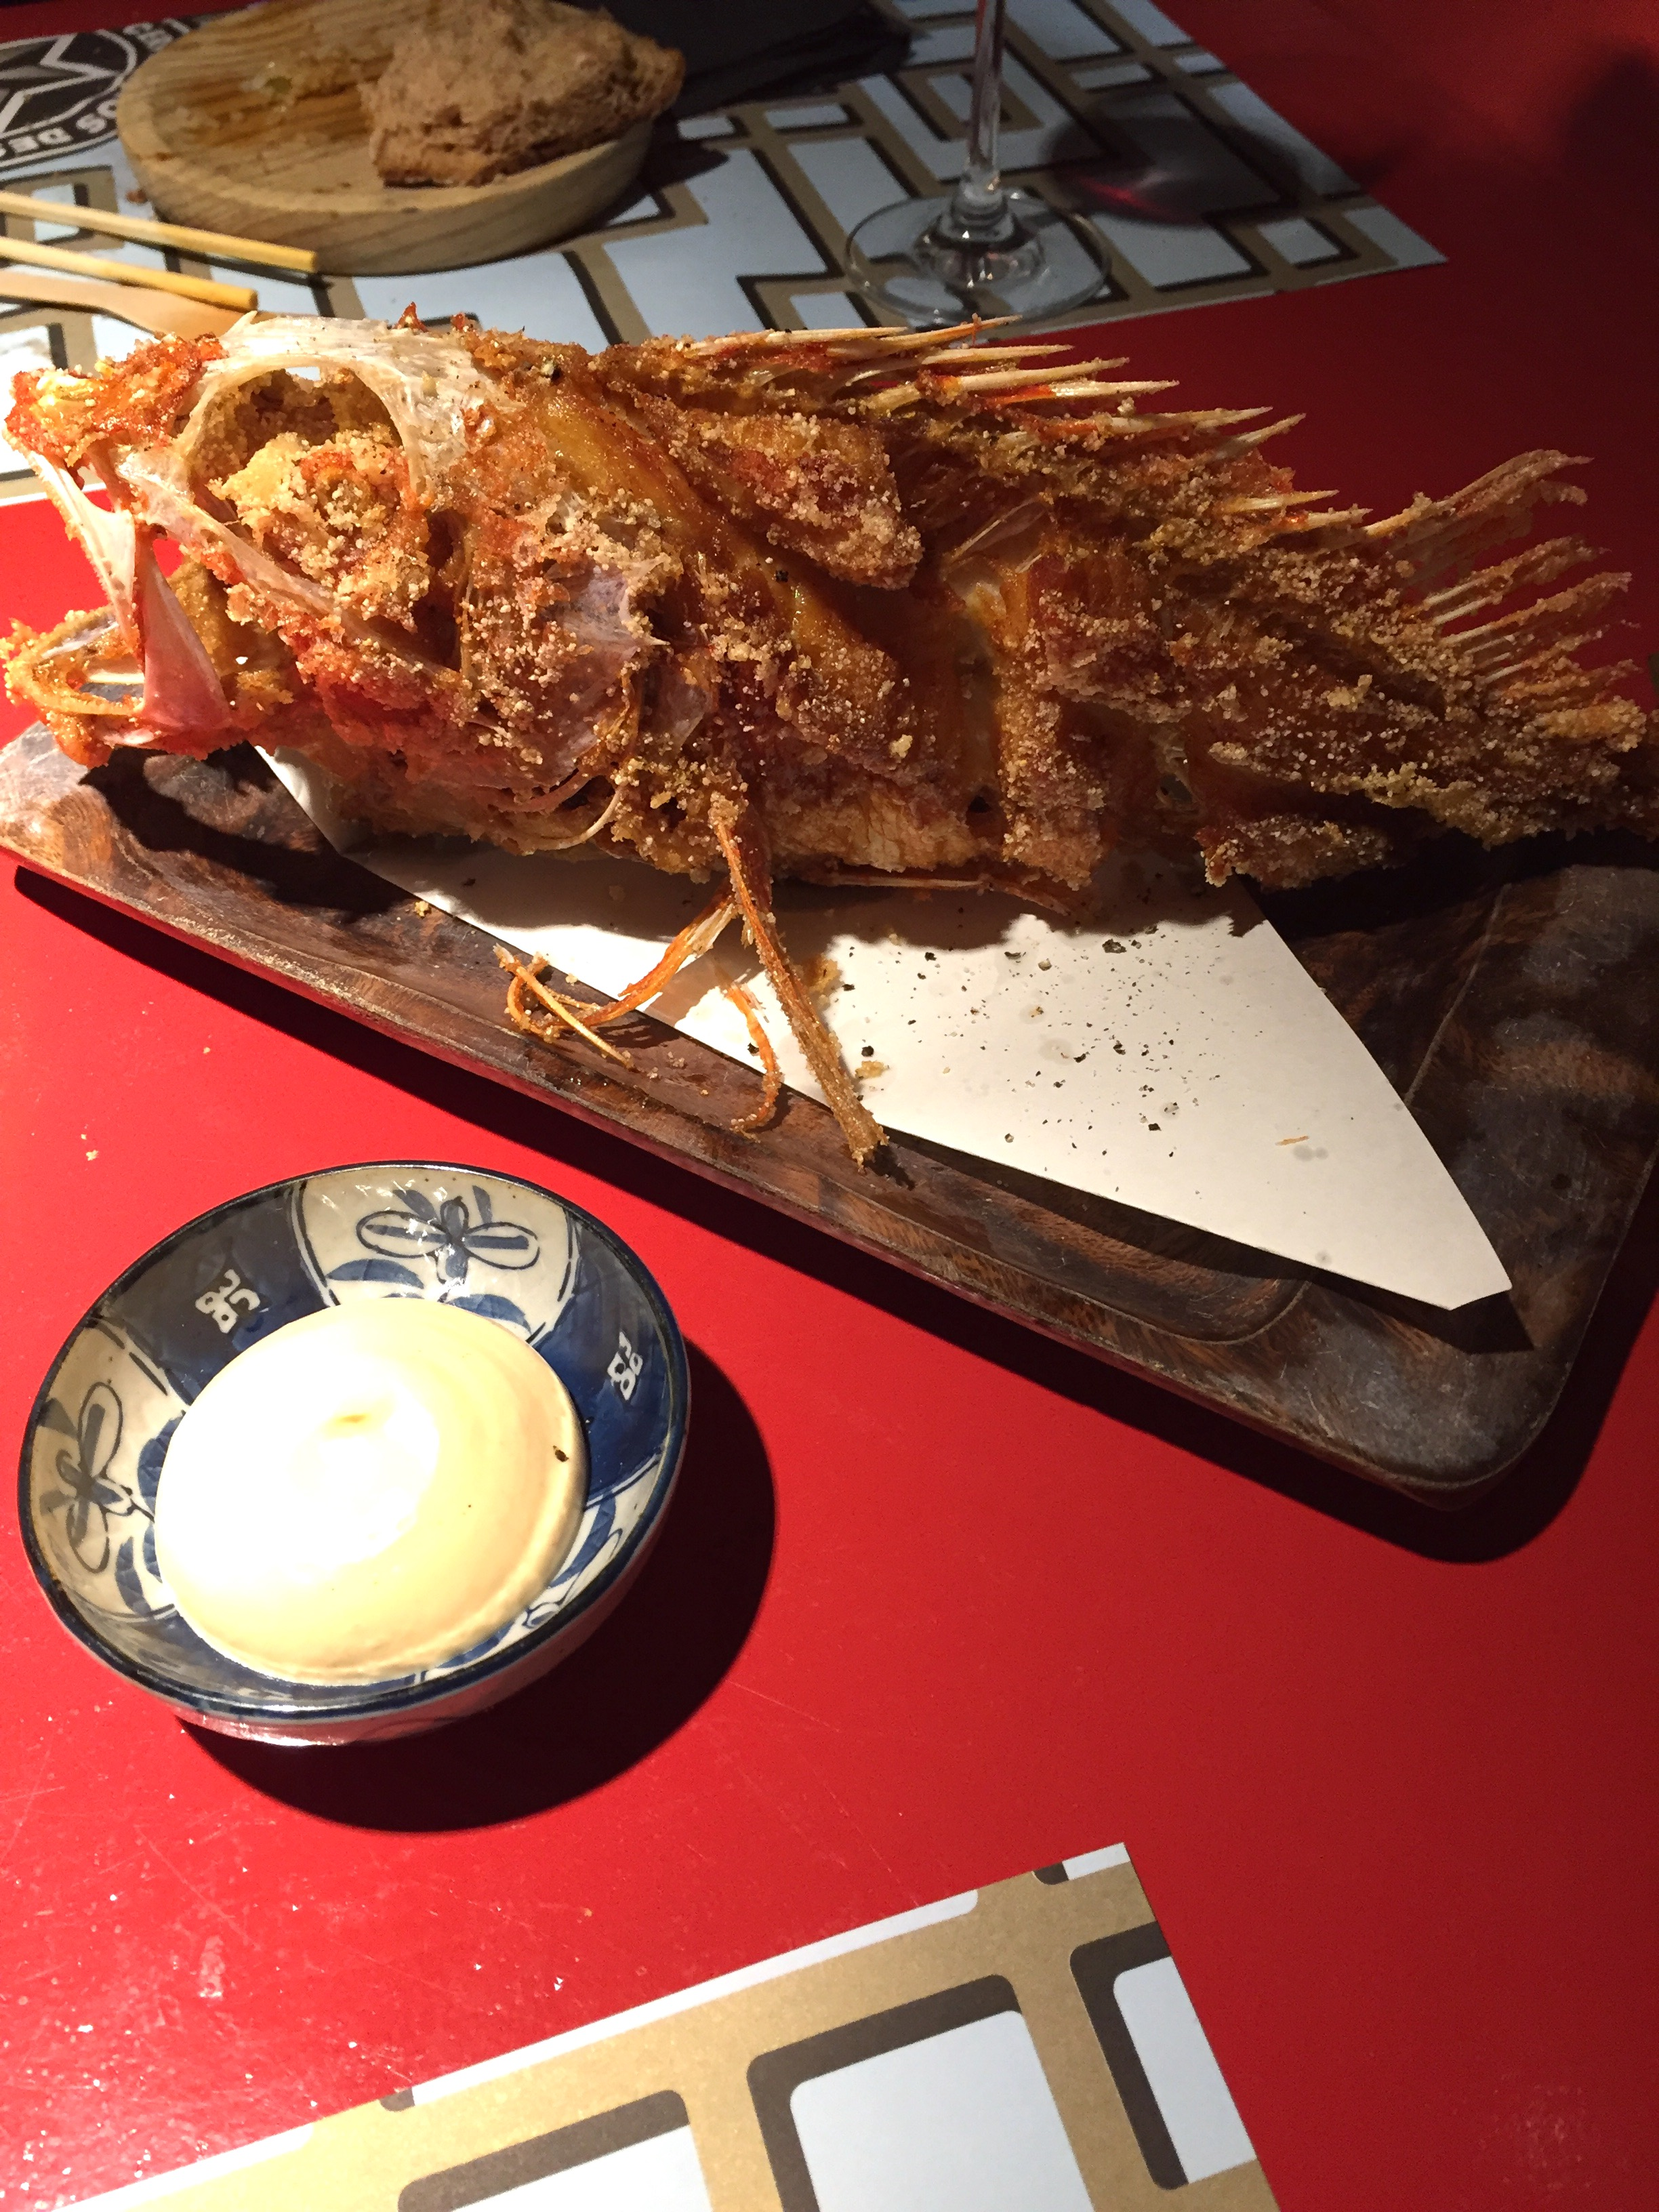 Fritura de cabracho (fried scorpion fish) with garlic aioli